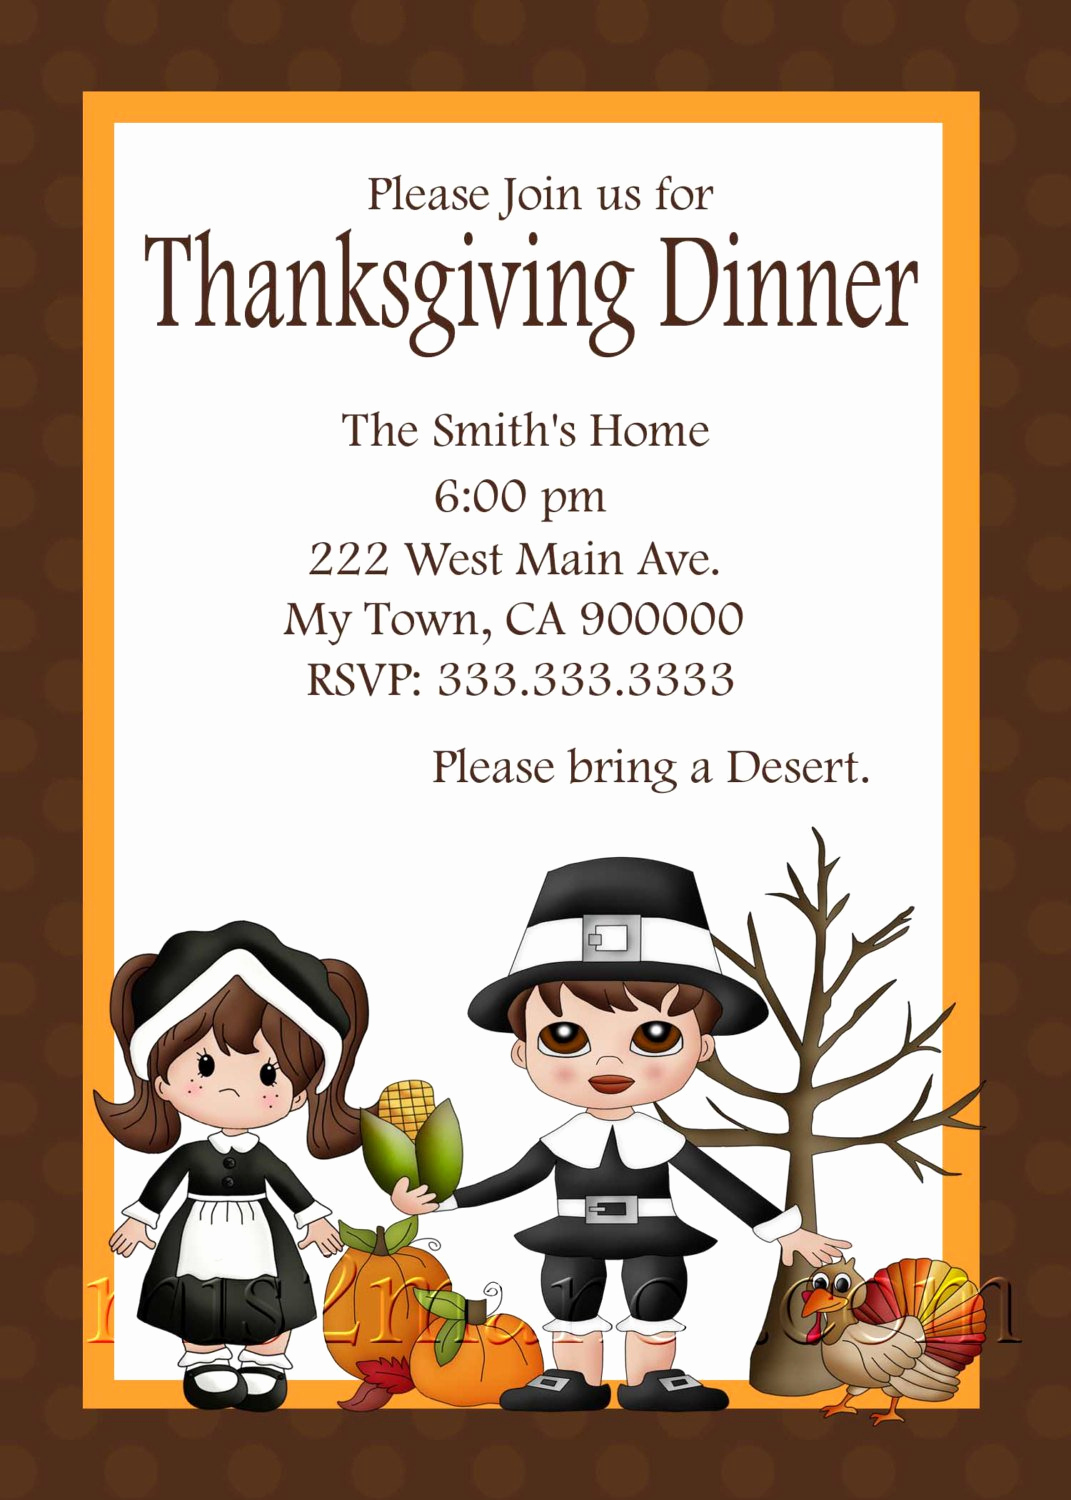 Funny Thanksgiving Invitation Wording Fresh Thanksgiving Thanksgiving Invitations Wording Funny for